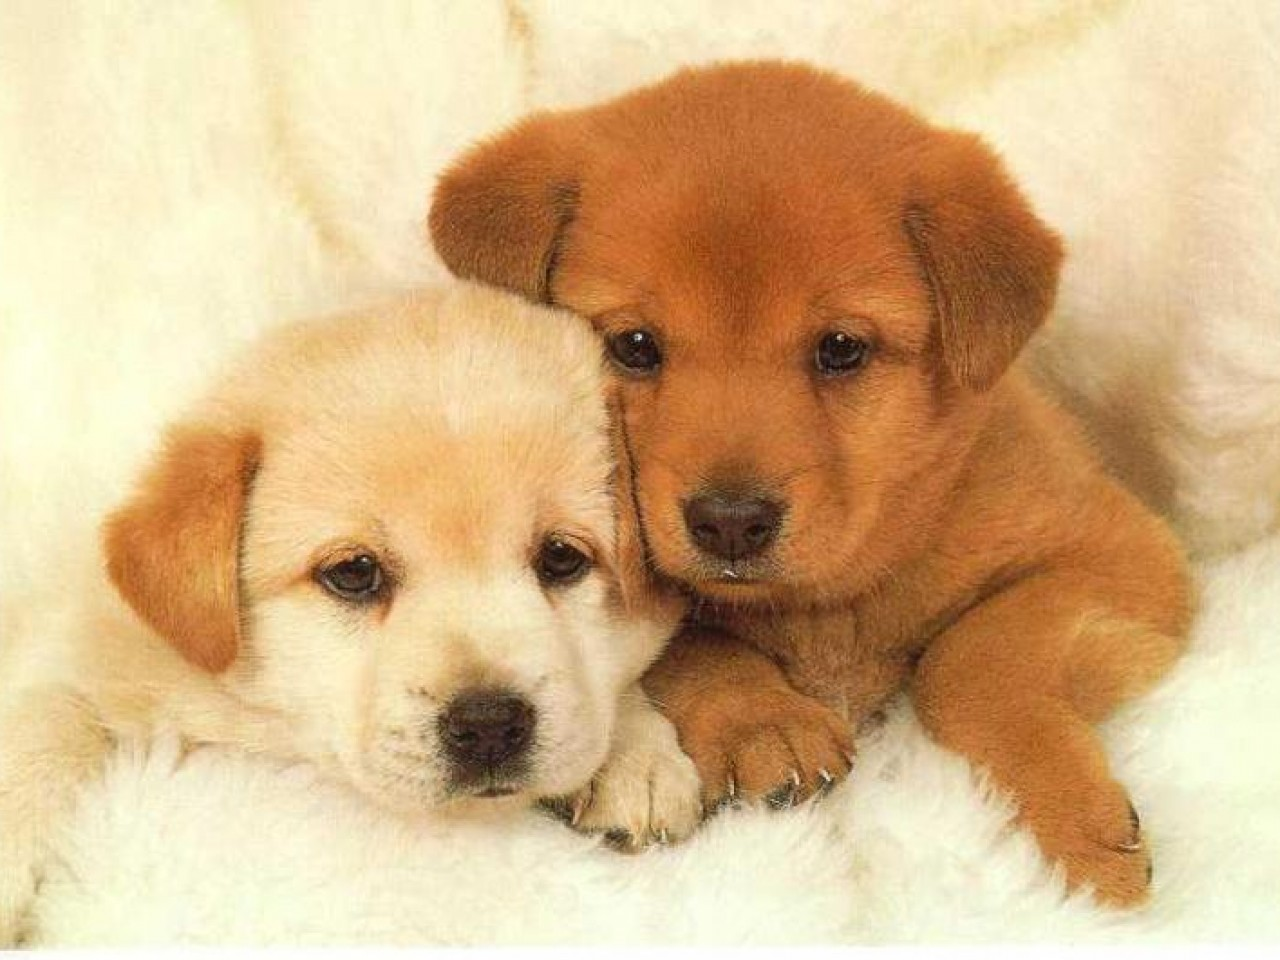 Puppy Wallpapers Cute Puppy Pictures Images on the App